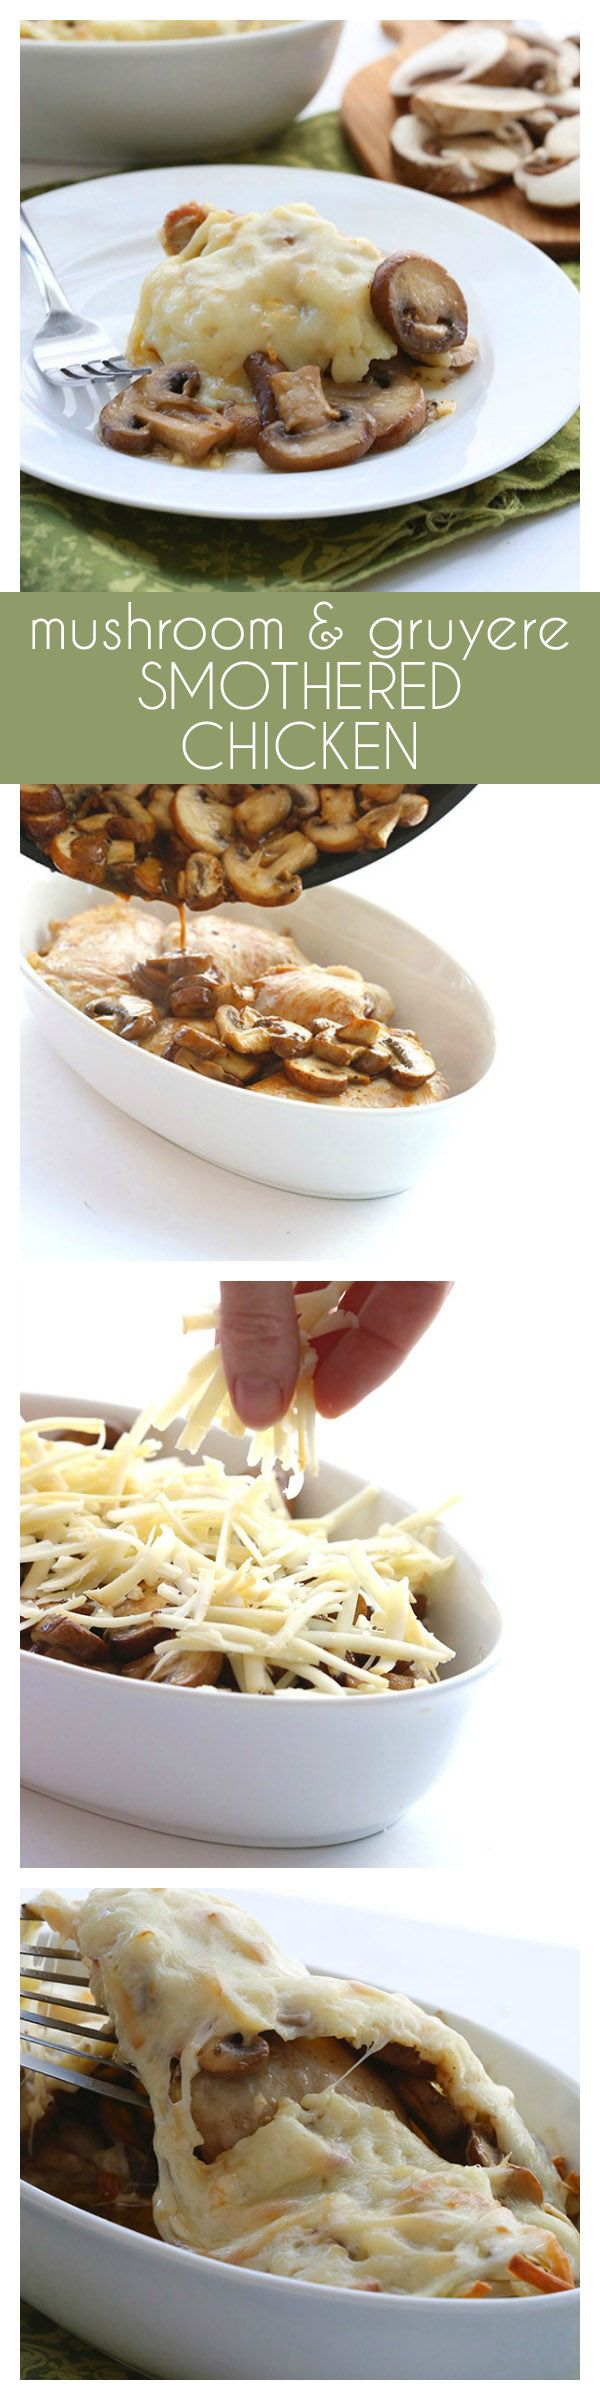 The best low carb dinner recipe! Browned chicken thighs smothered in sautéed mushrooms and cheese and baked to perfection.